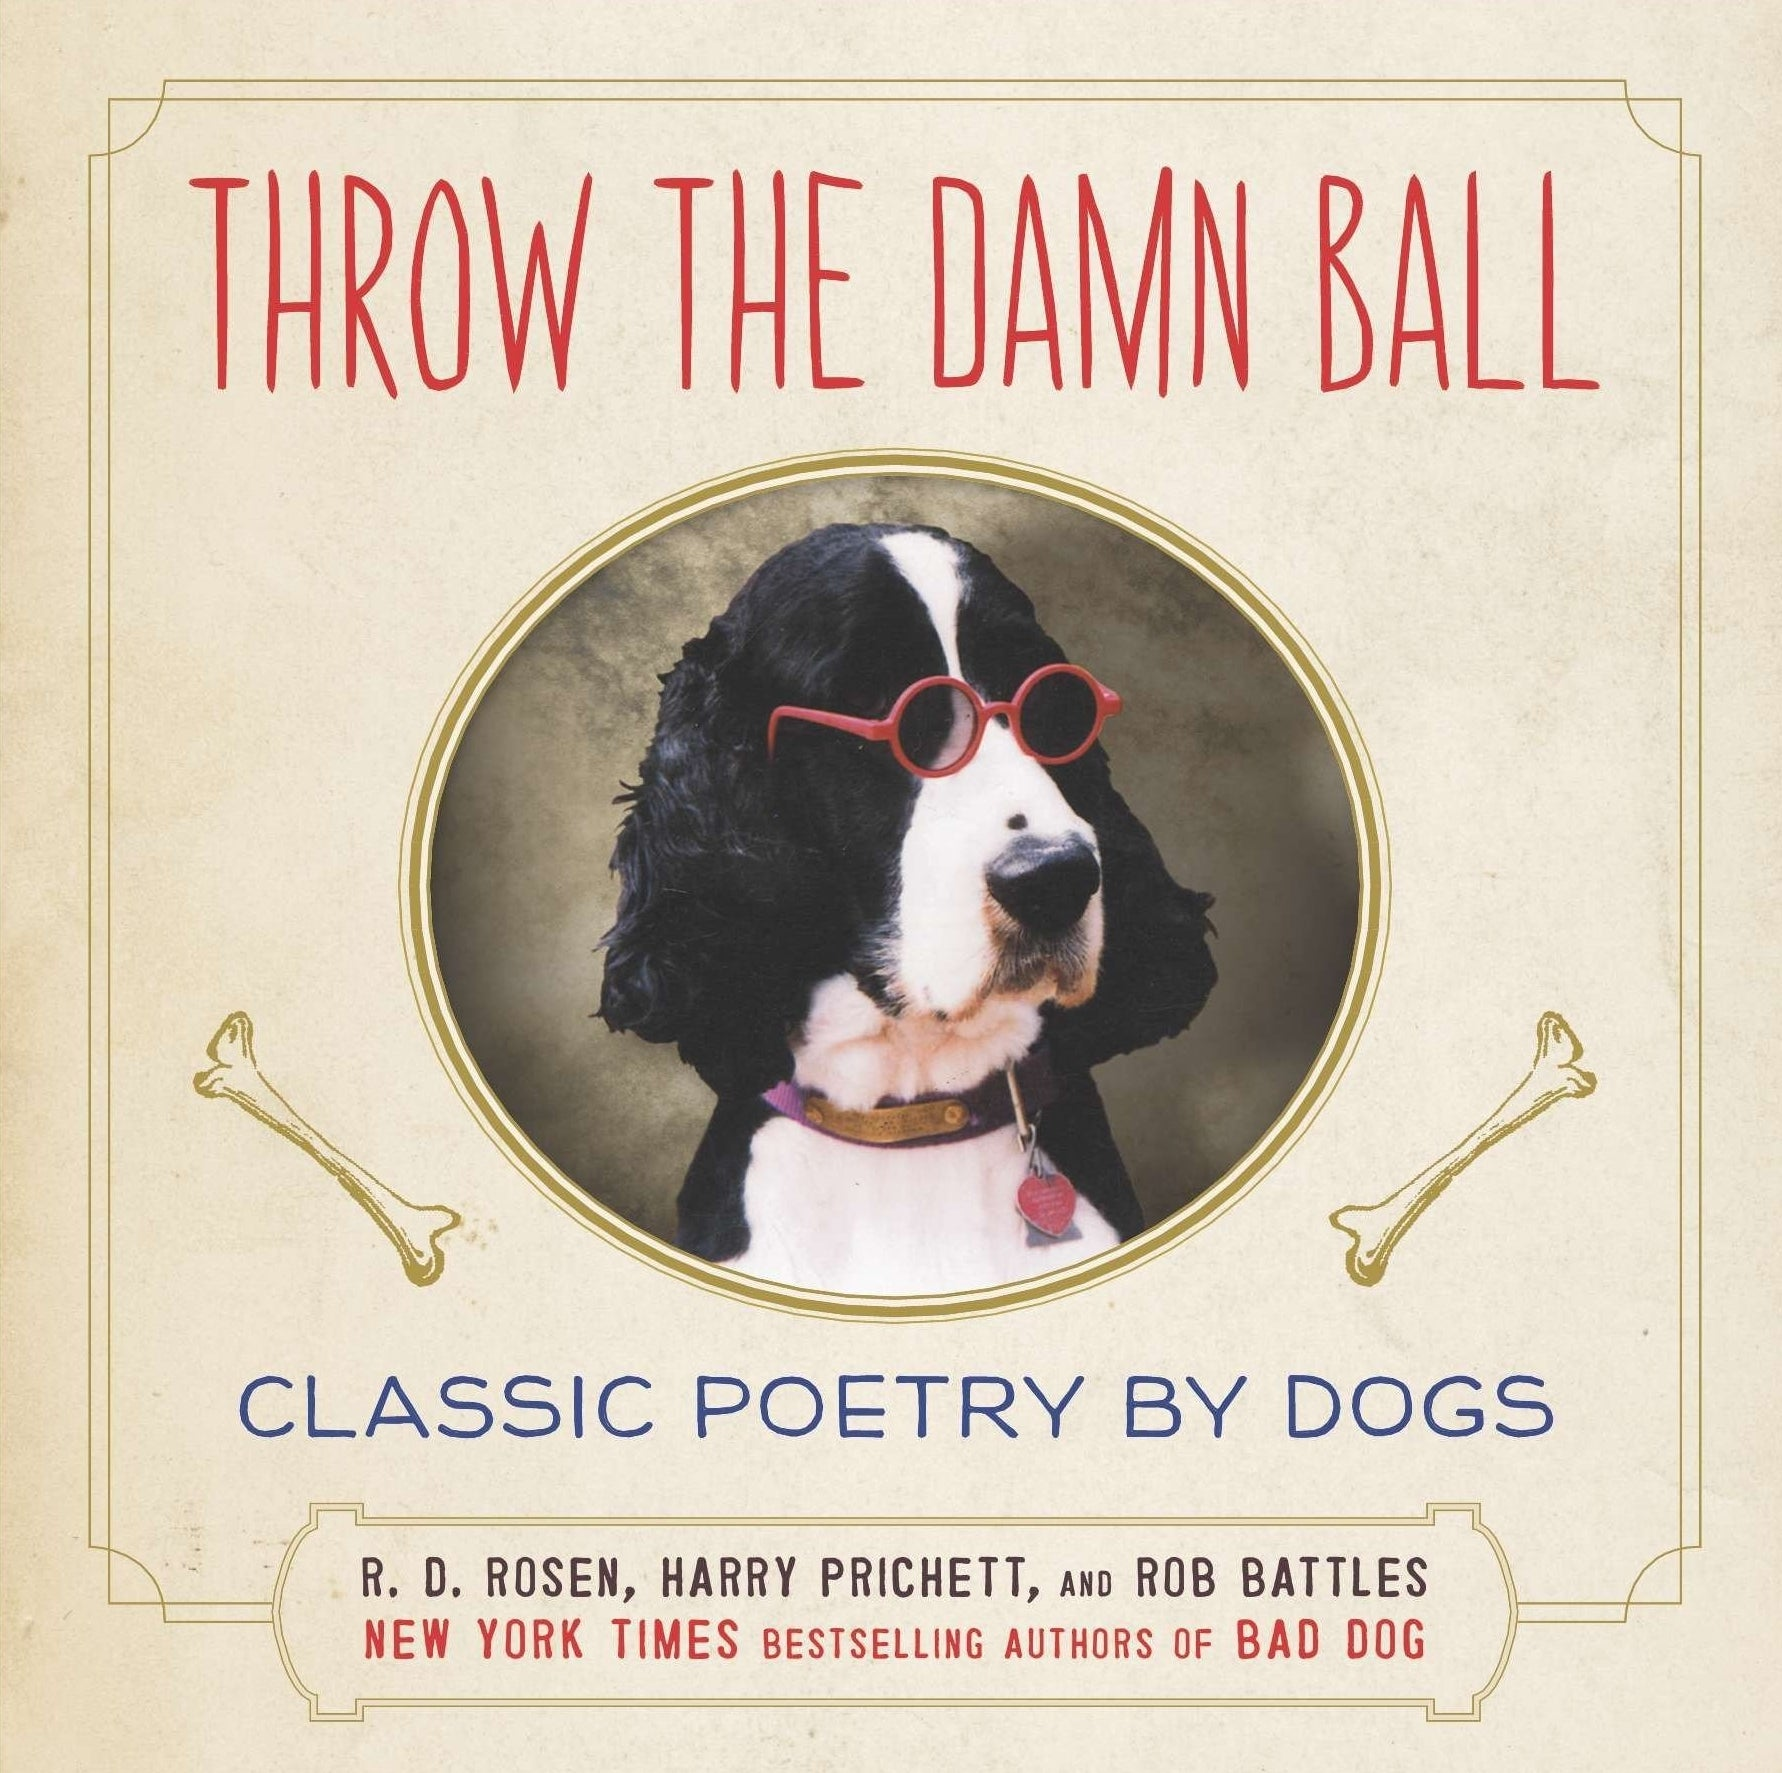 Throw the Damn Ball: Classic Poetry by Dogs.